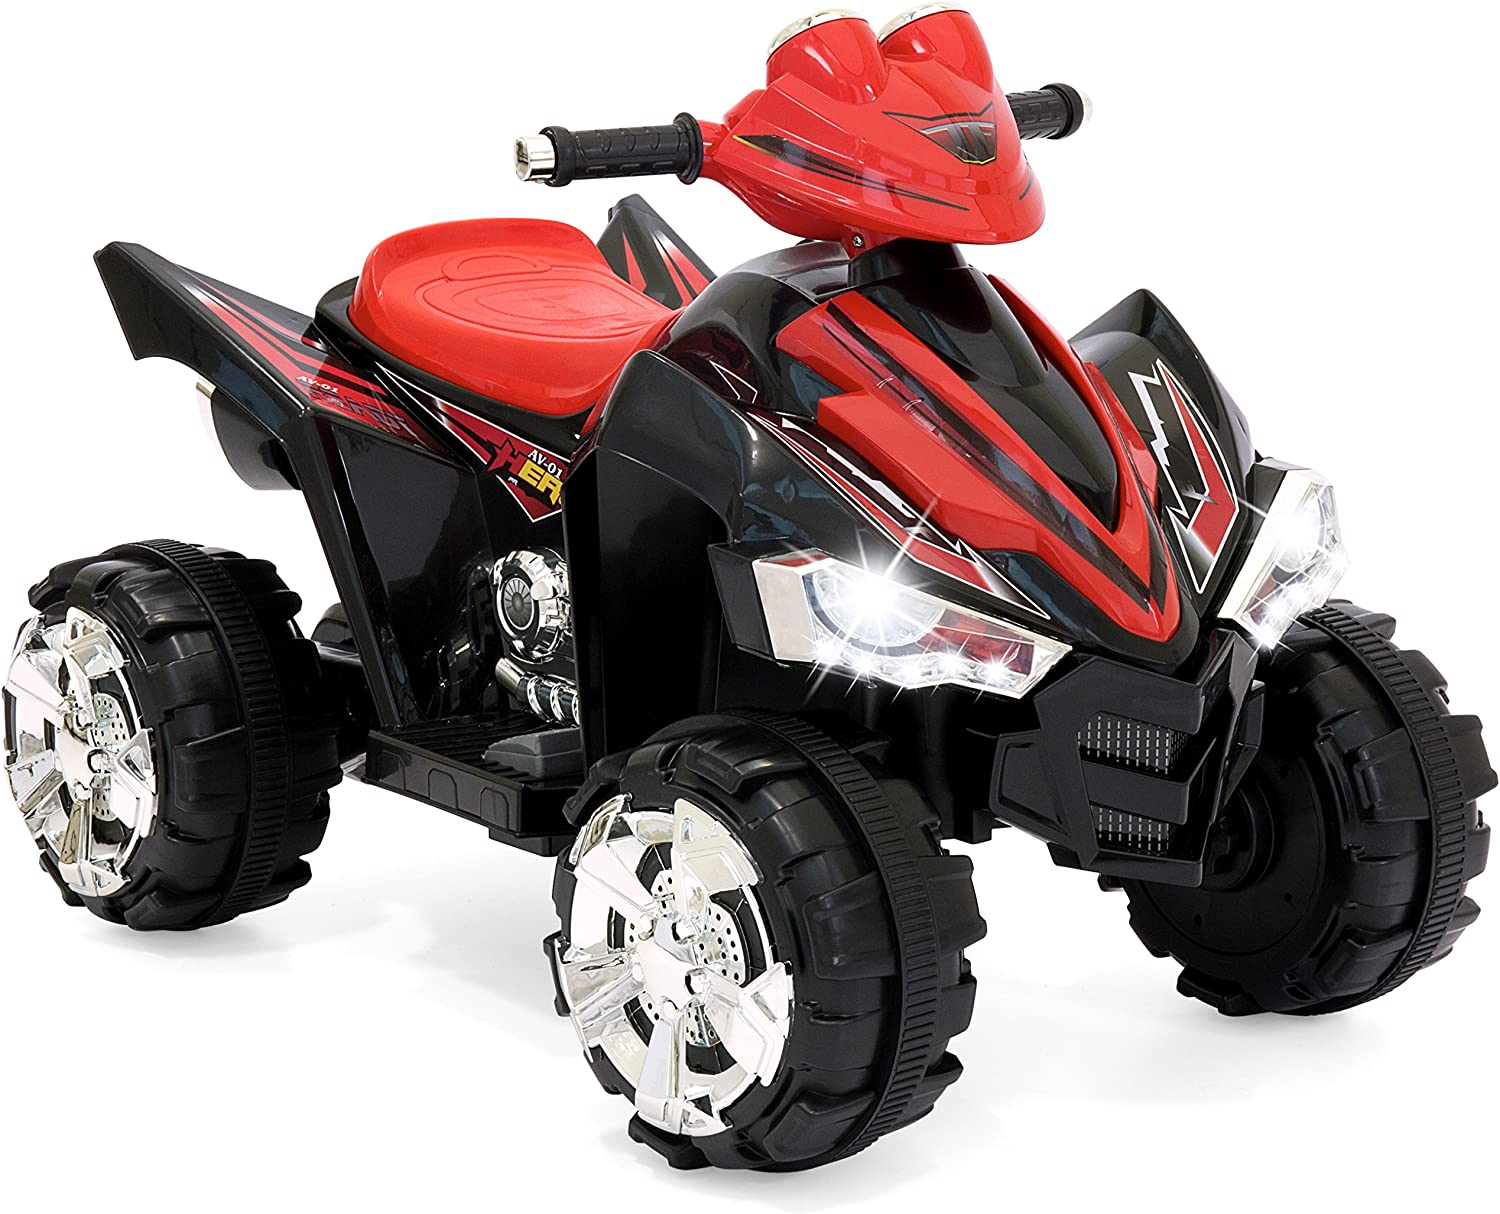 Best Choice Products 12V Kids Battery Powered Electric 4-Wheeler Quad ATV Ride On Toy w/ 2 Speeds